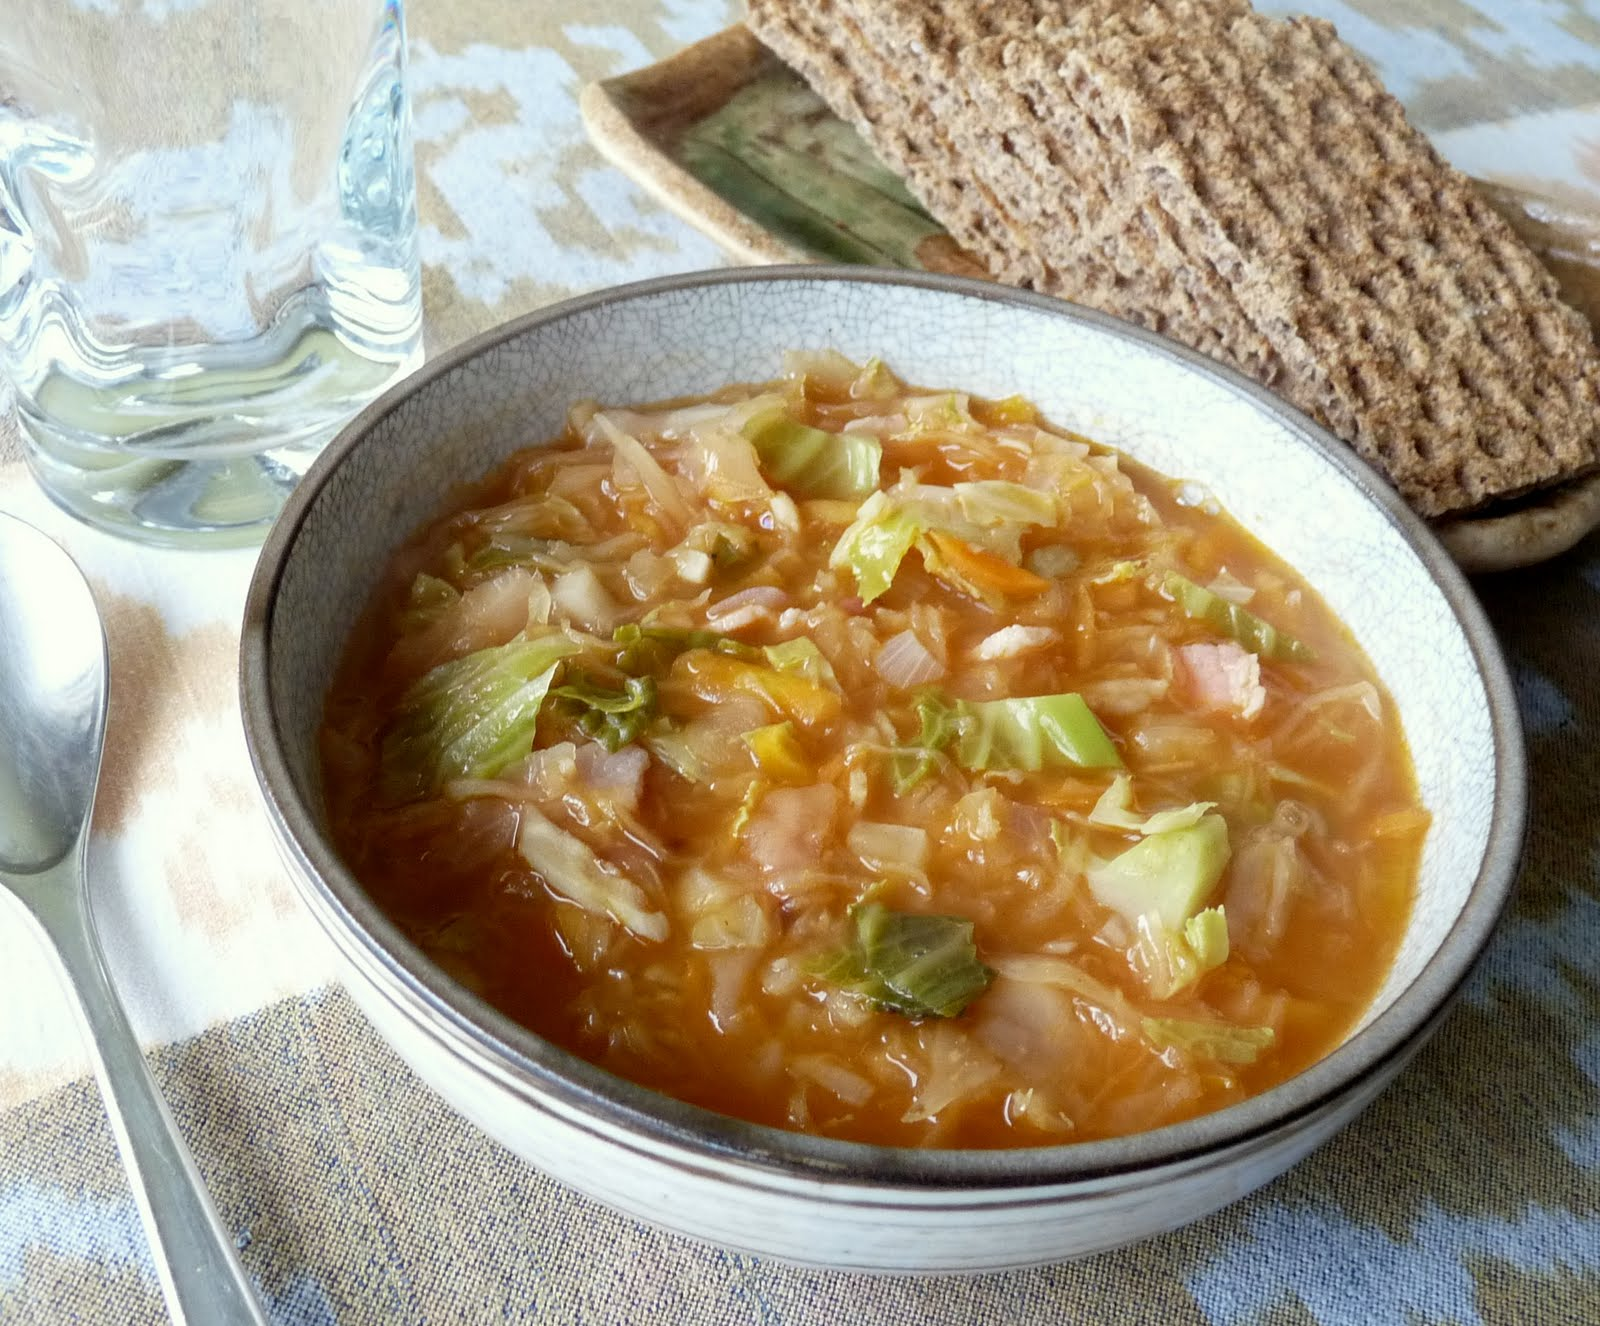 Seasonal Ontario Food: Shchi; Russian Cabbage Soup